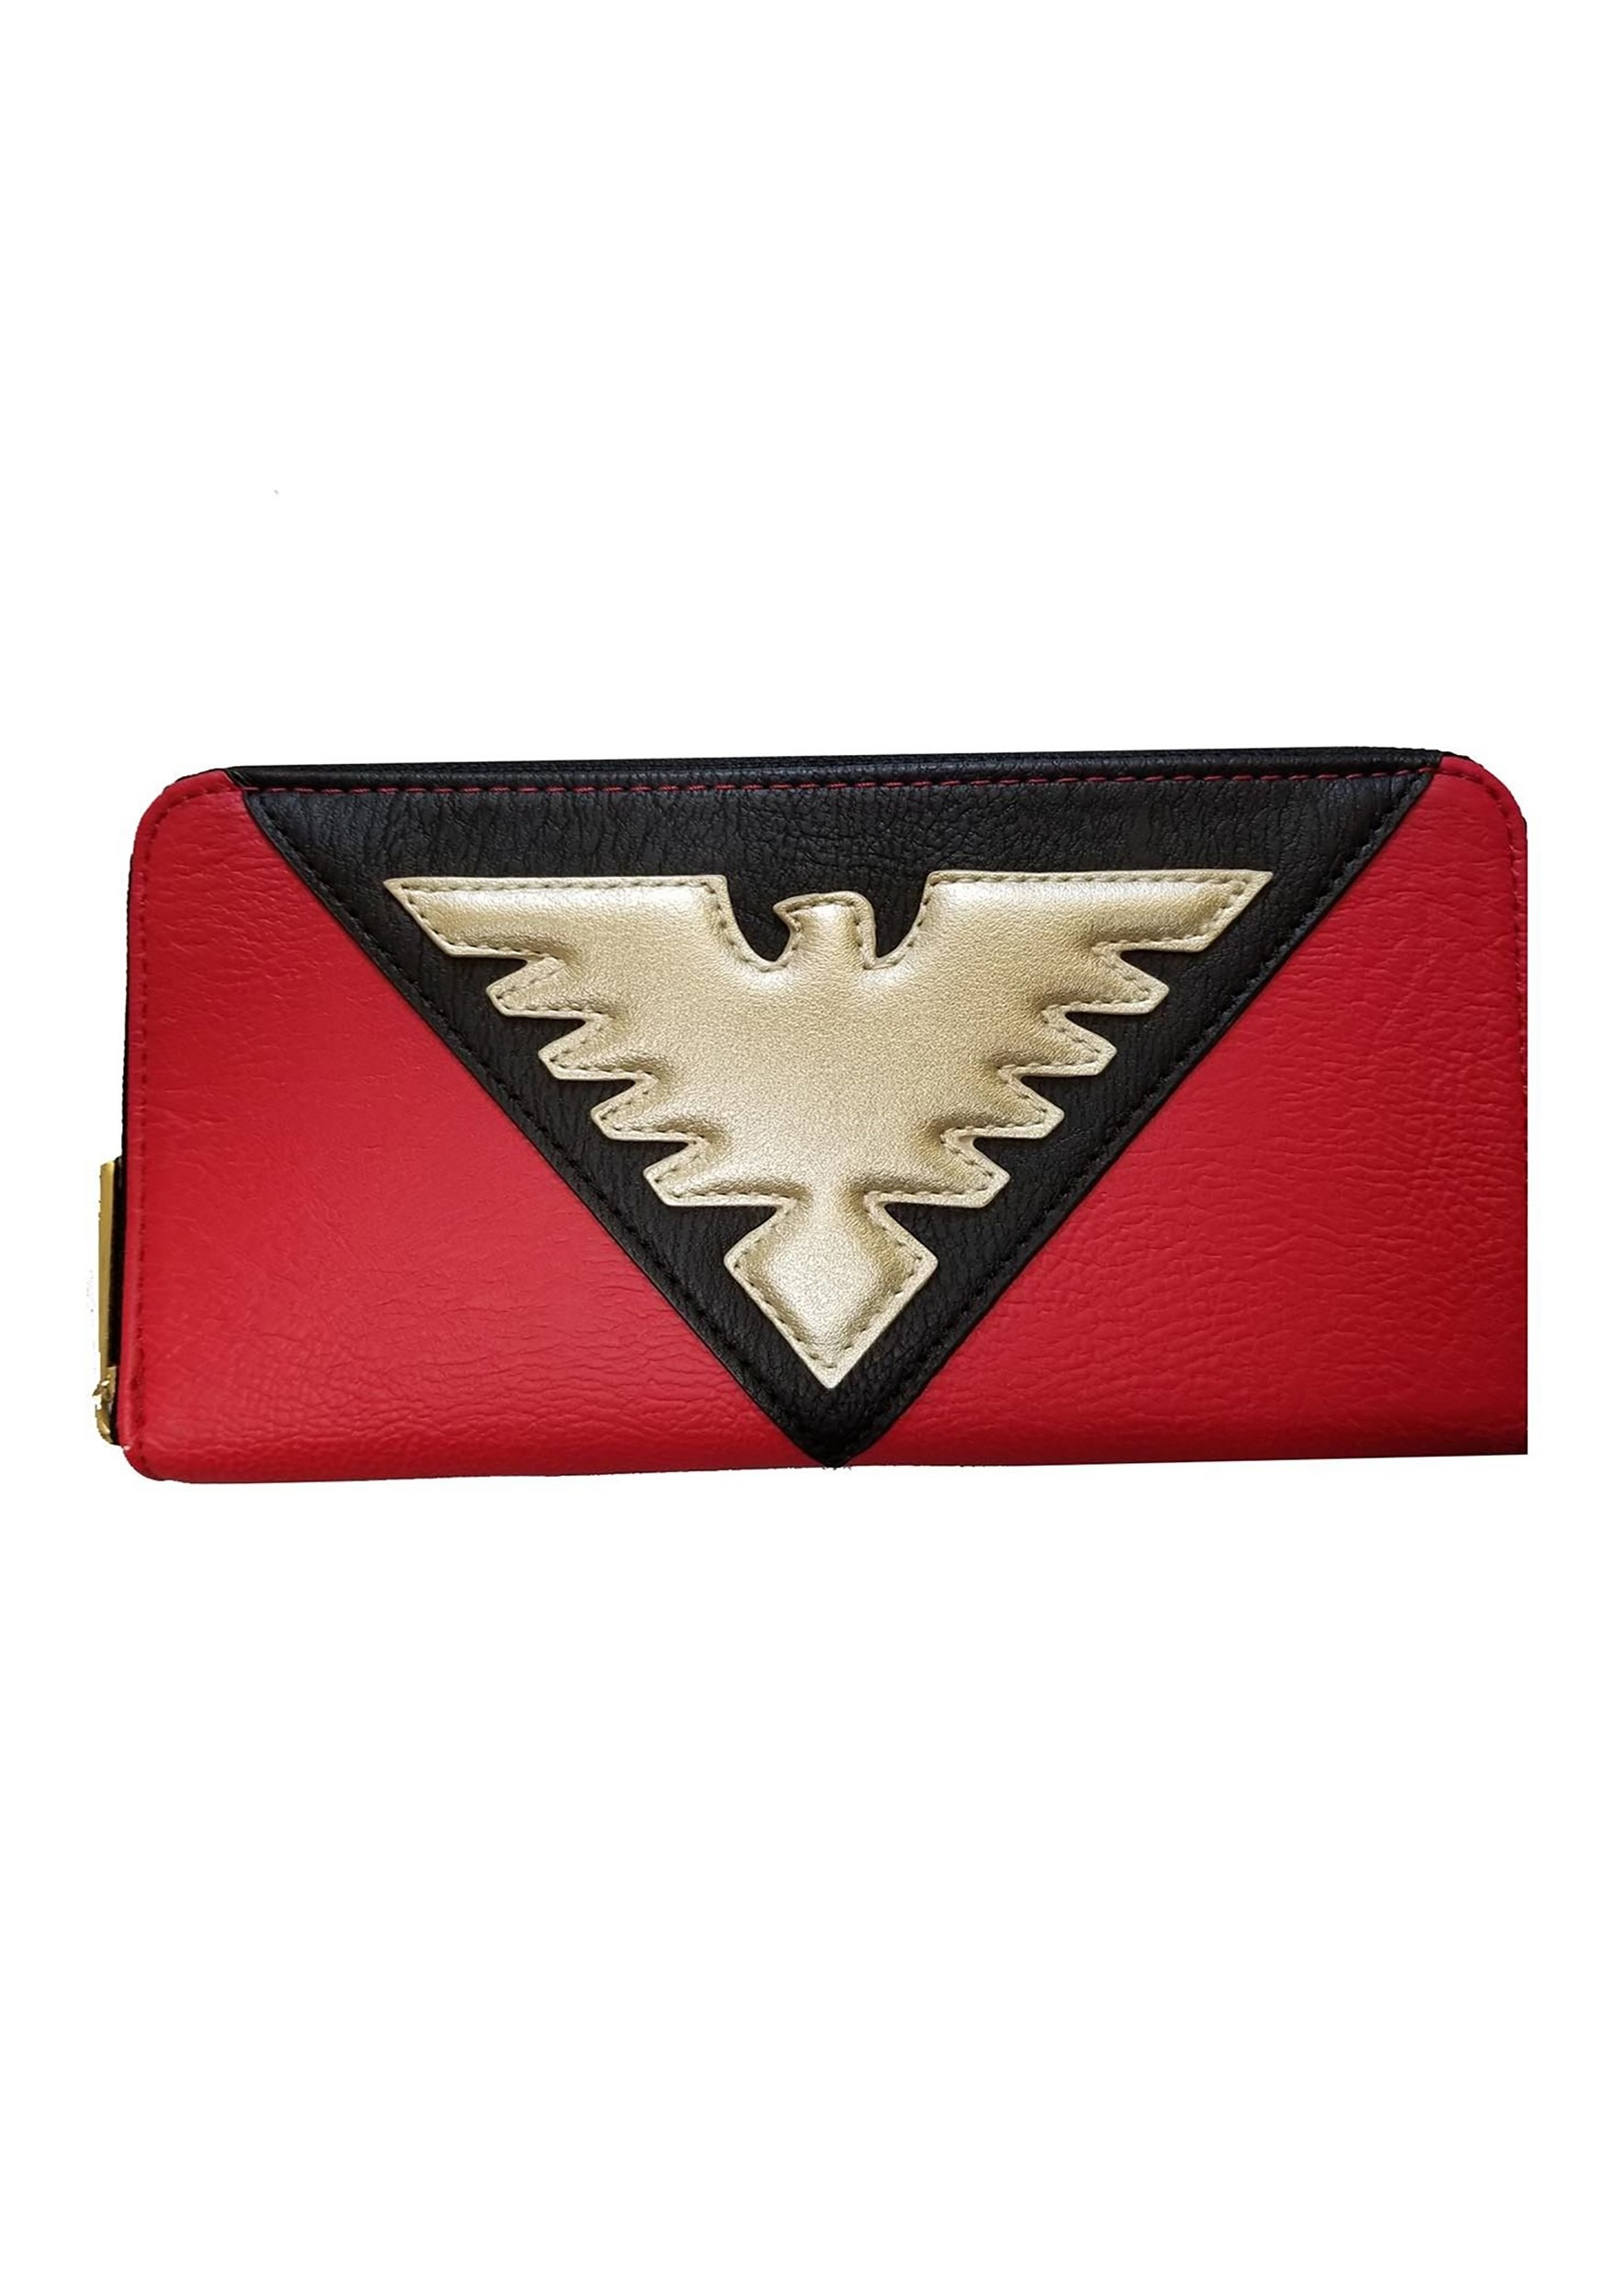 X Men Red Phoenix Faux Leather Zip Around Wallet By Loungefly